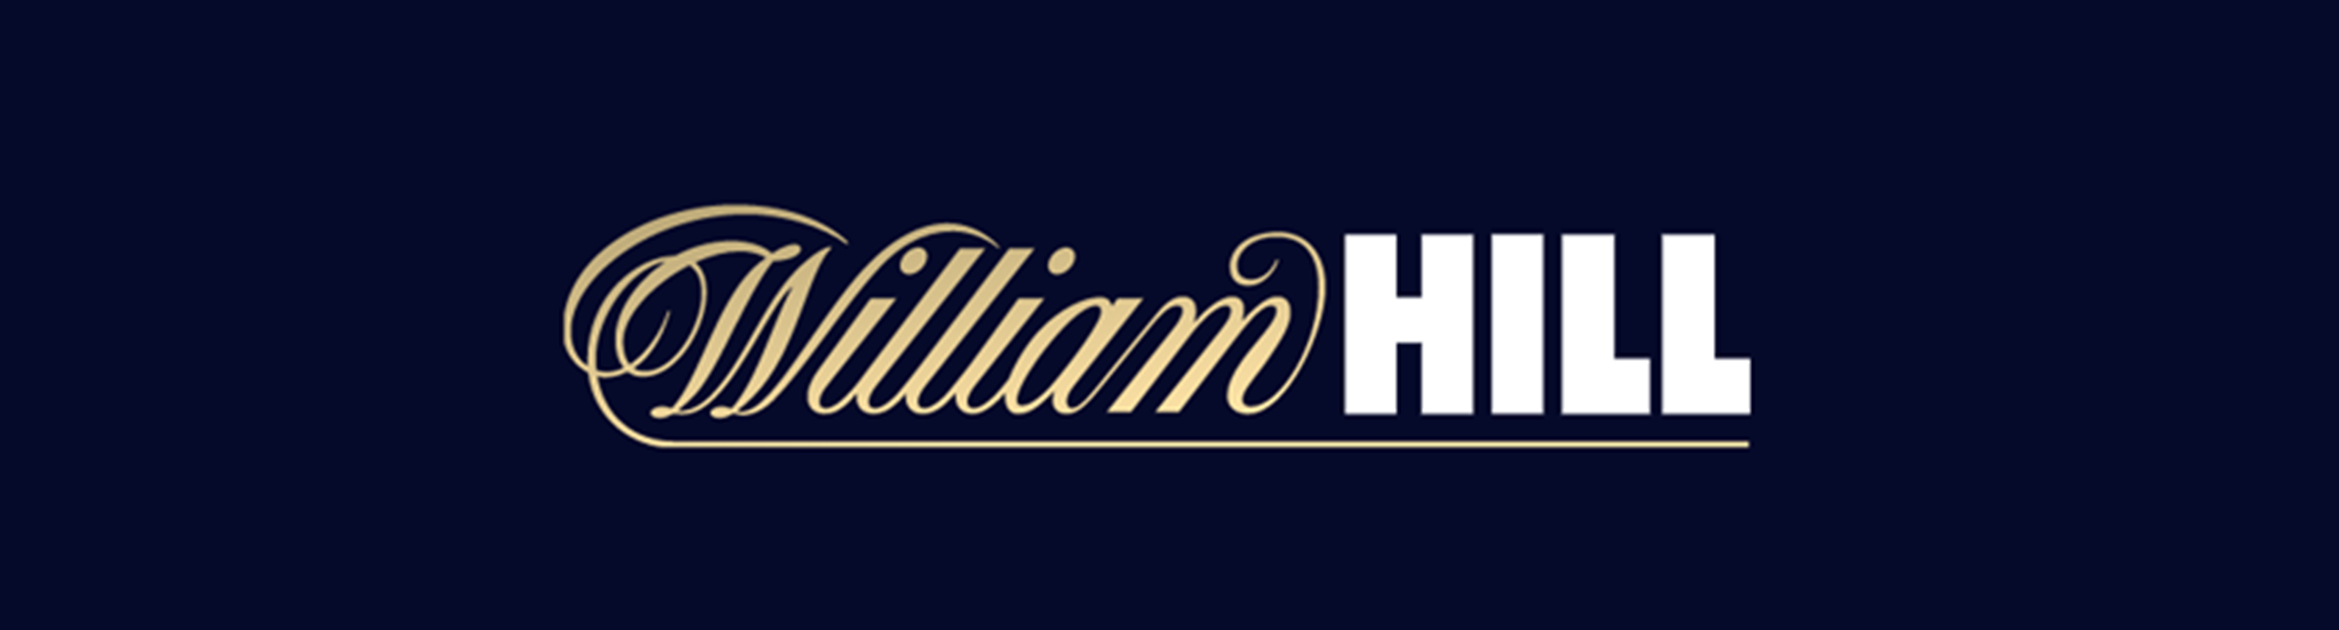 william hll